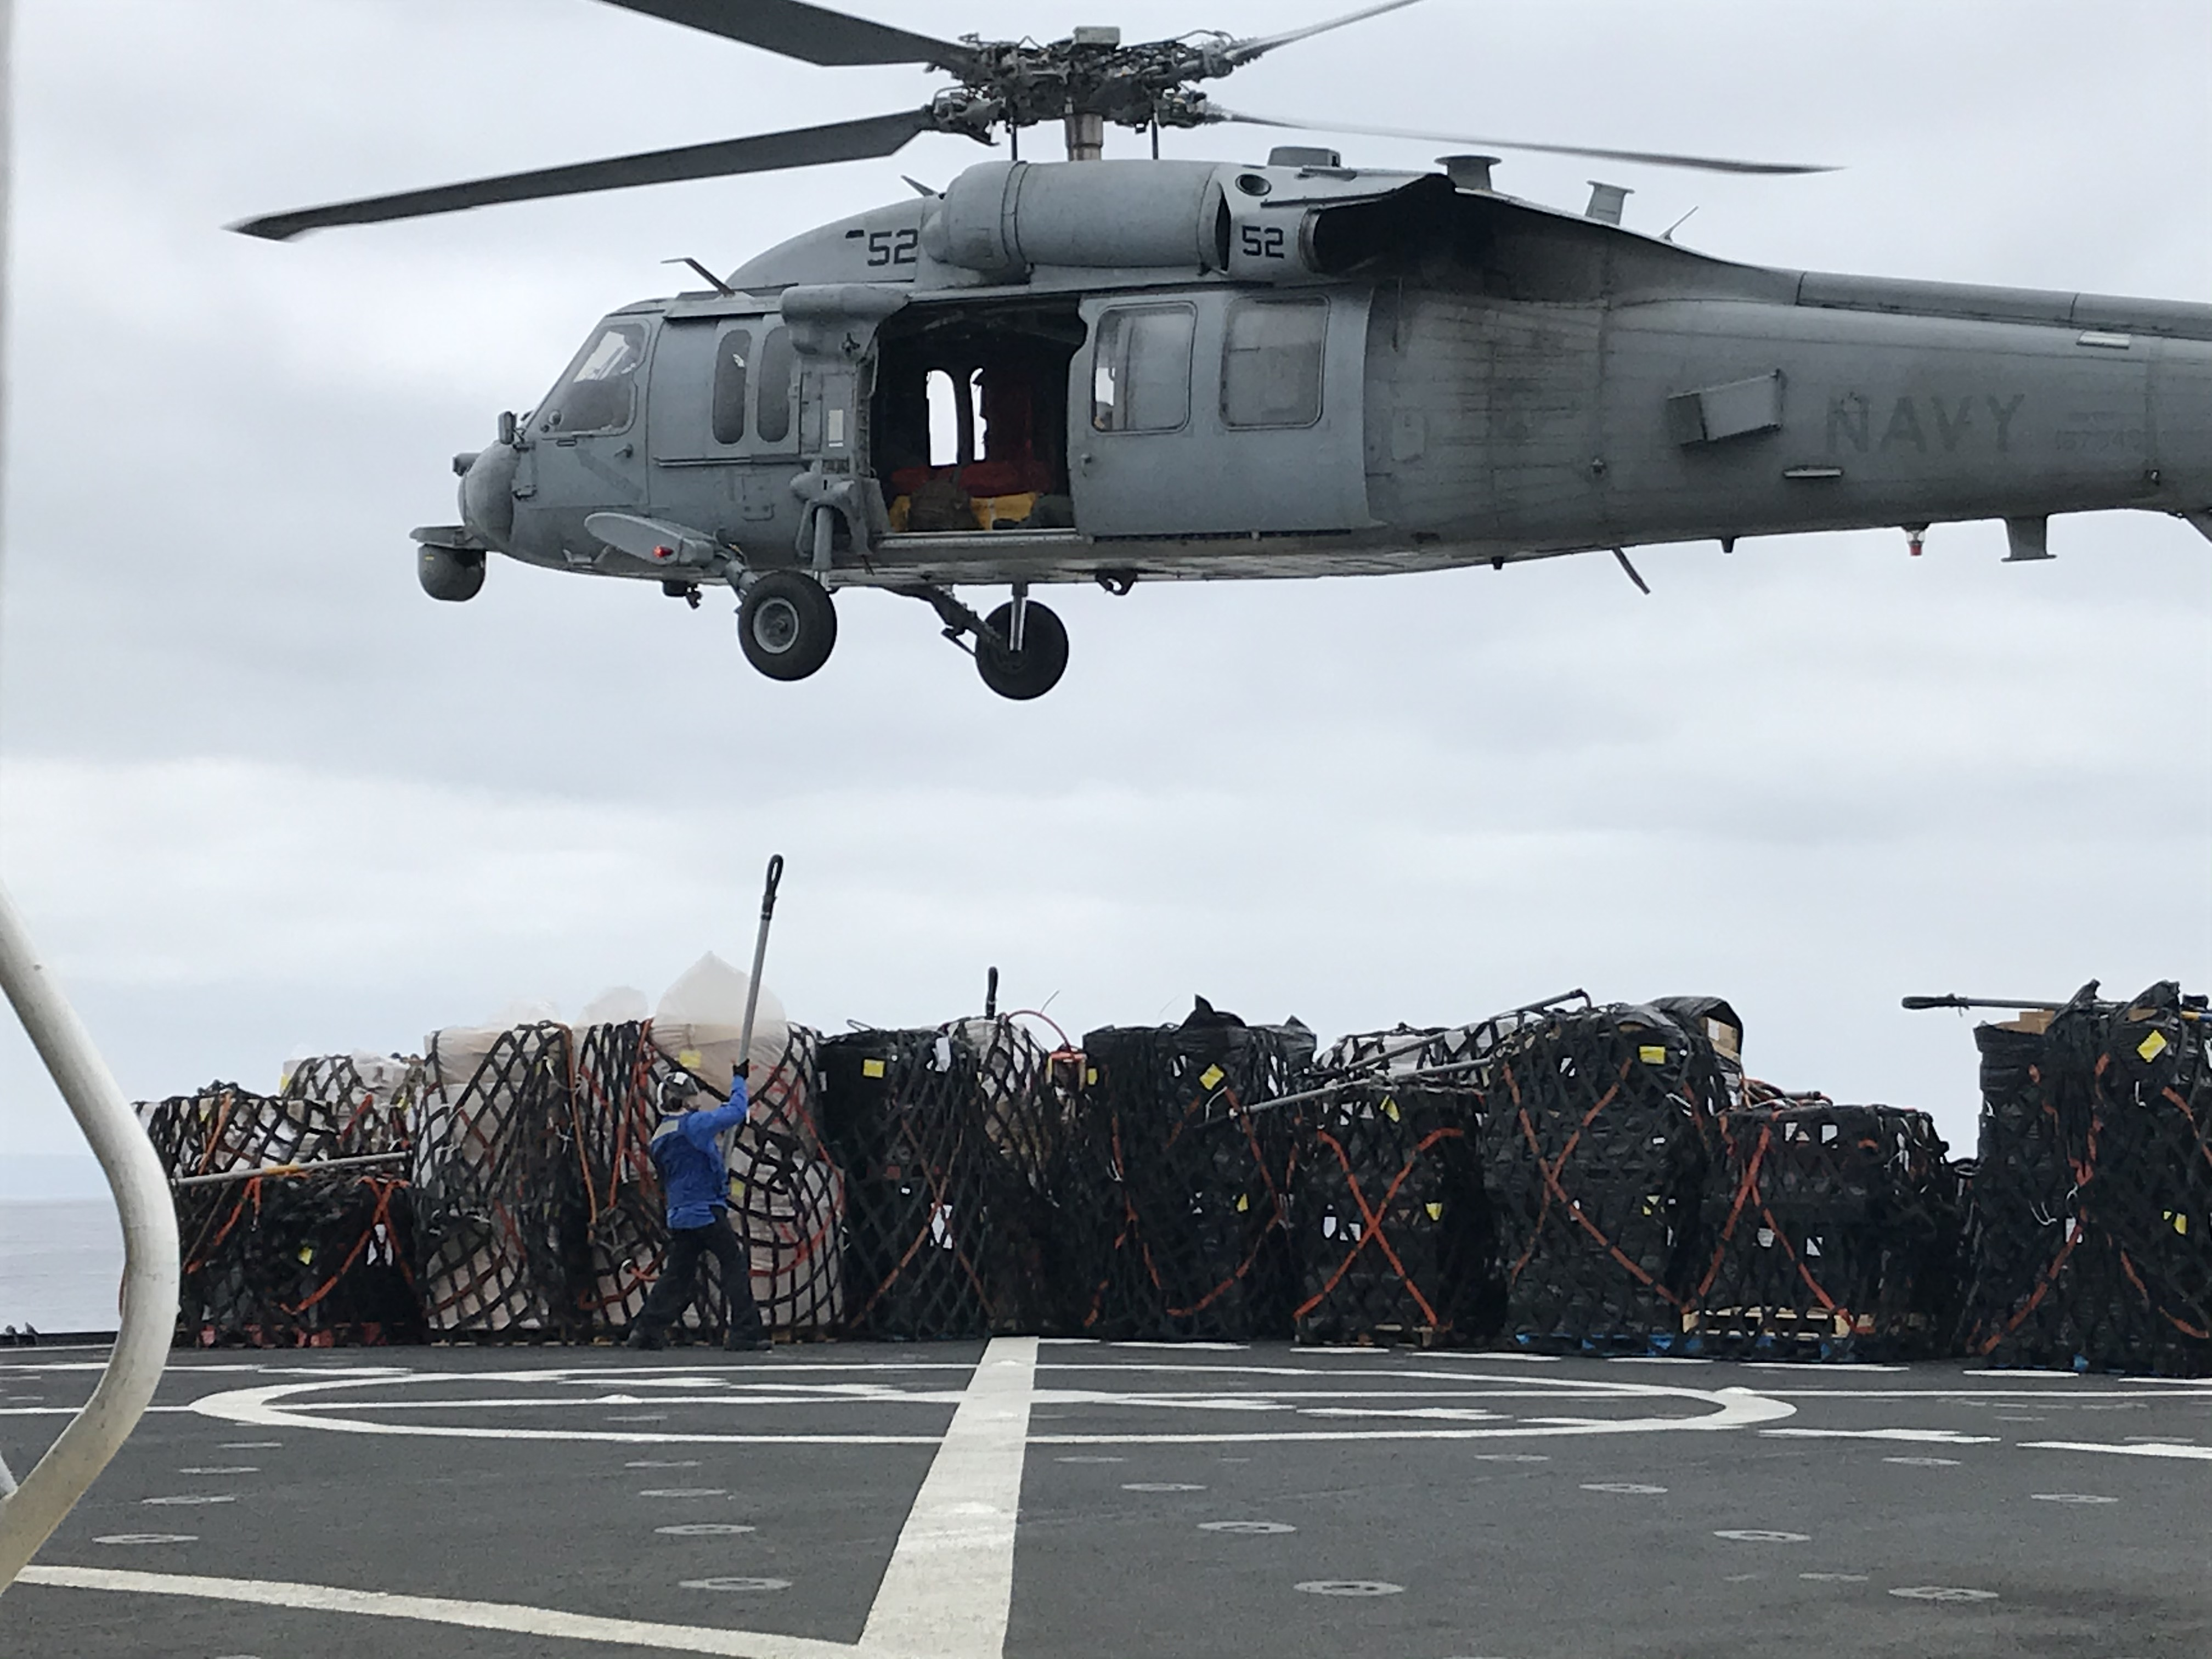 Military Sealift Command's Navy Cargo Afloat Rig Team personnel providing support during vertical replenishment operations.